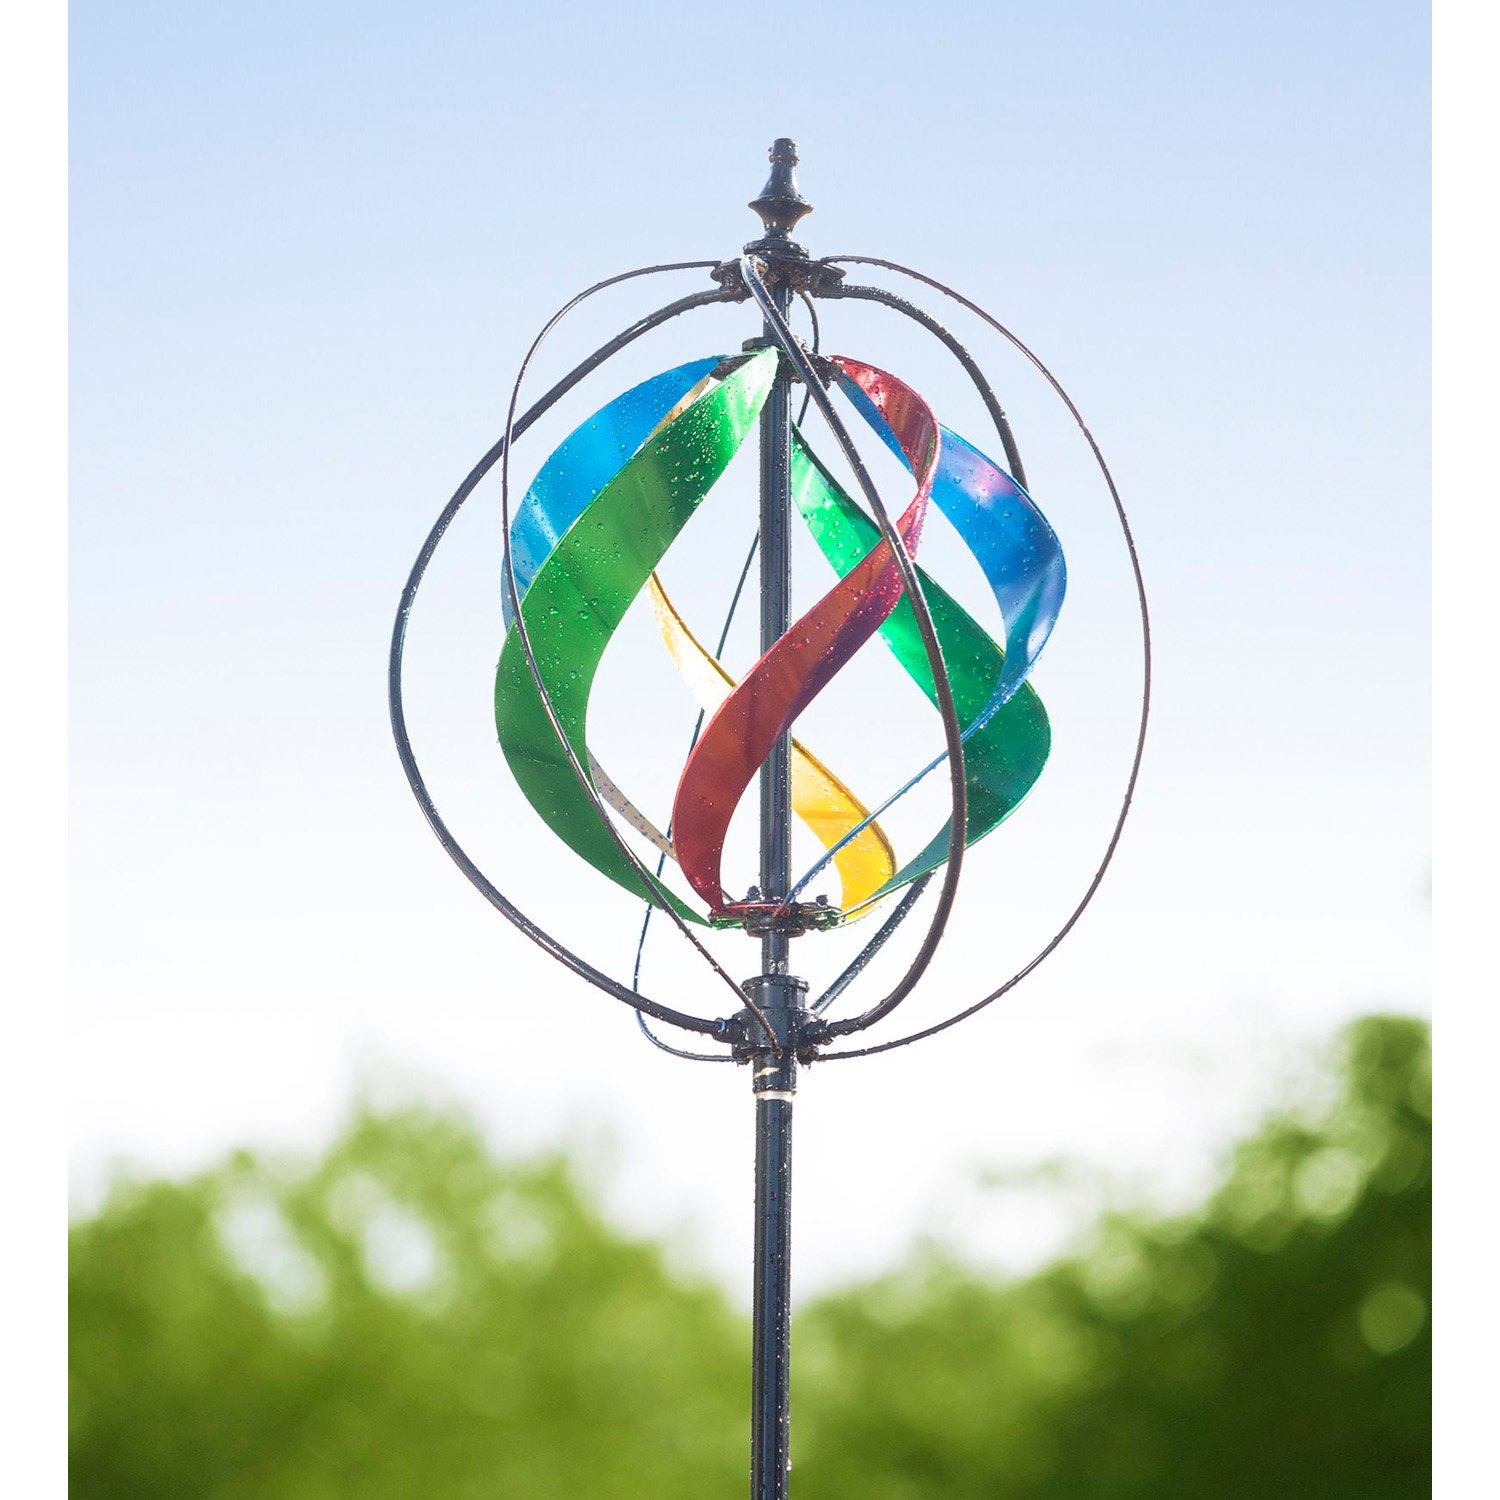 Evergreen 89-inch Multi-Colored Outdoor Safe Kinetic Hydro Spinner Lawn Watering Garden Stake